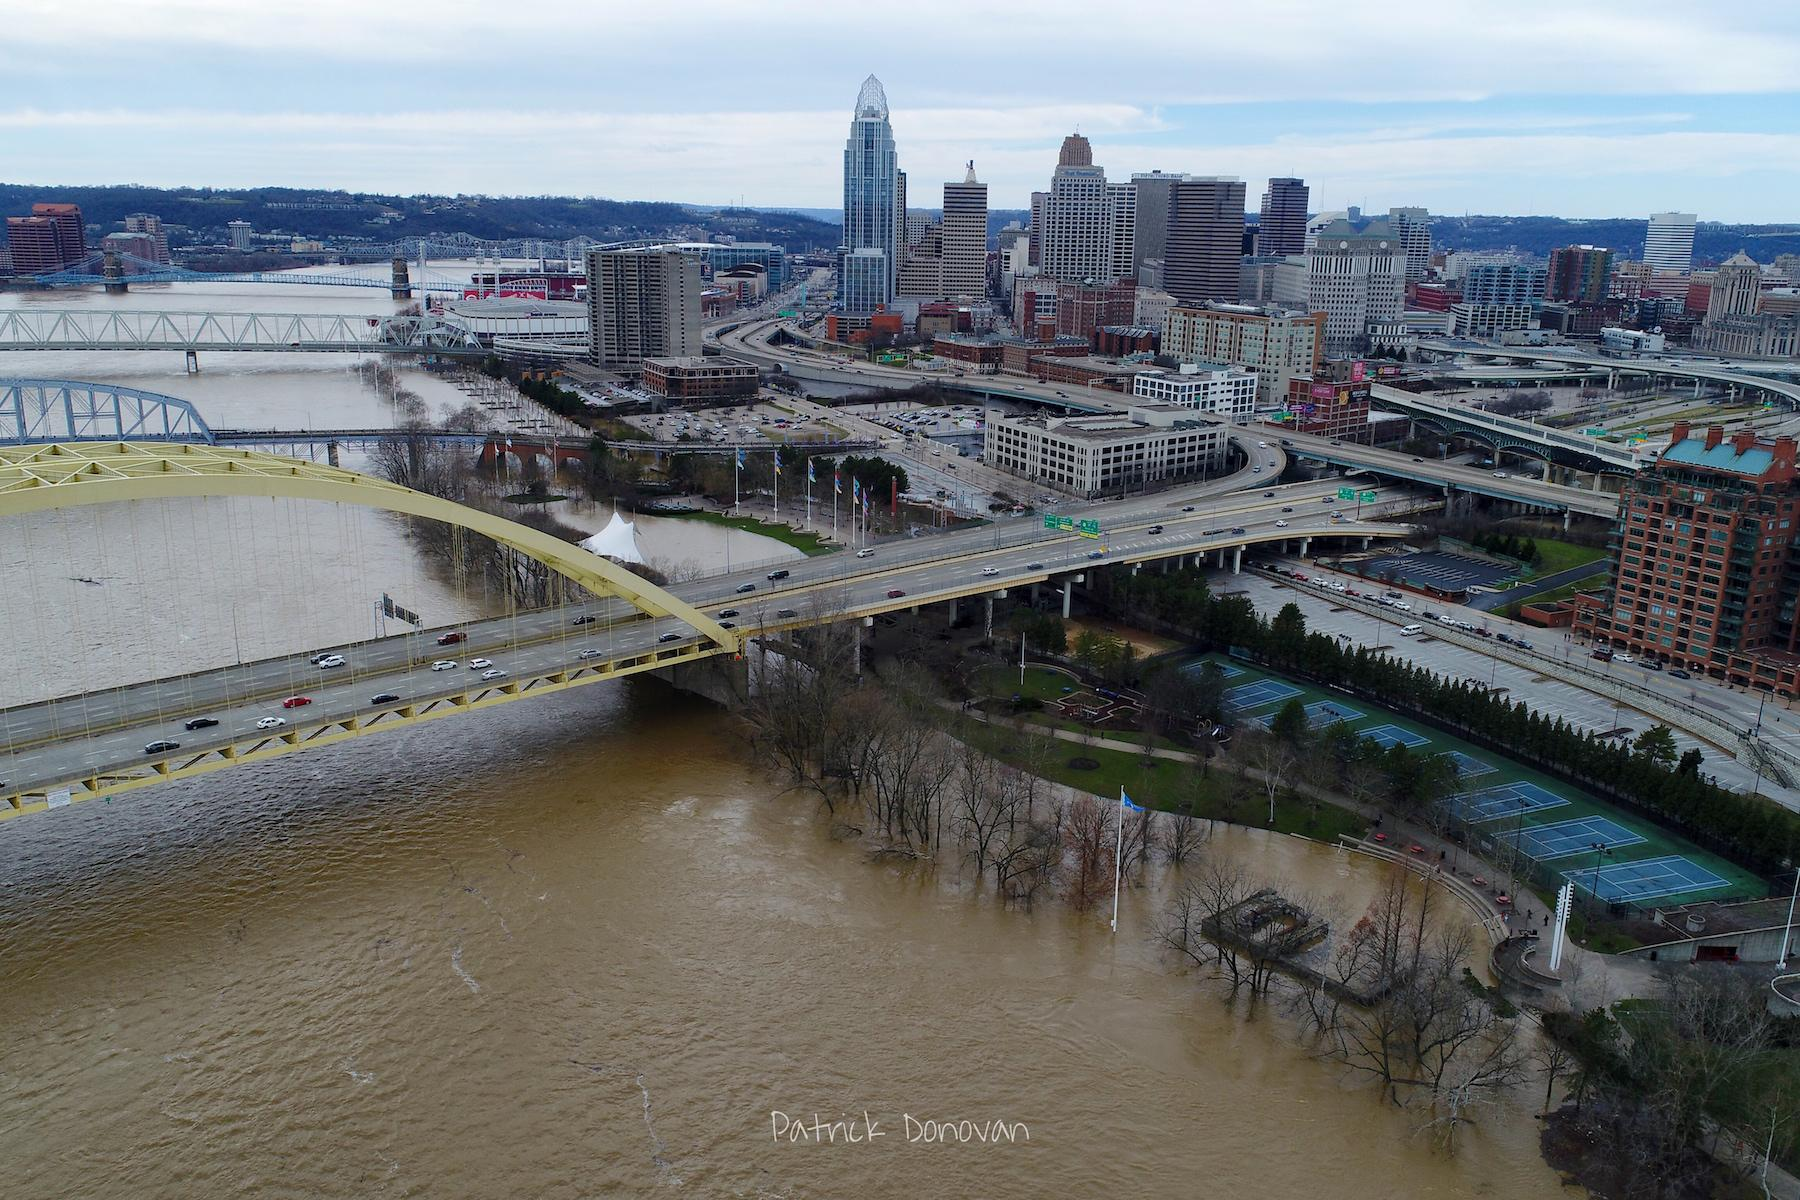 On Sunday, February 25, the Ohio River Flood of 2018 crested just above 60 feet, which is eight feet above the 52-foot flood stage. This is the biggest flood the city has seen since 1997. Smale Park is mostly underwater as are Sawyer Point and Yeatman's Cove. / Image: Patrick Donovan // Published: 2.26.18